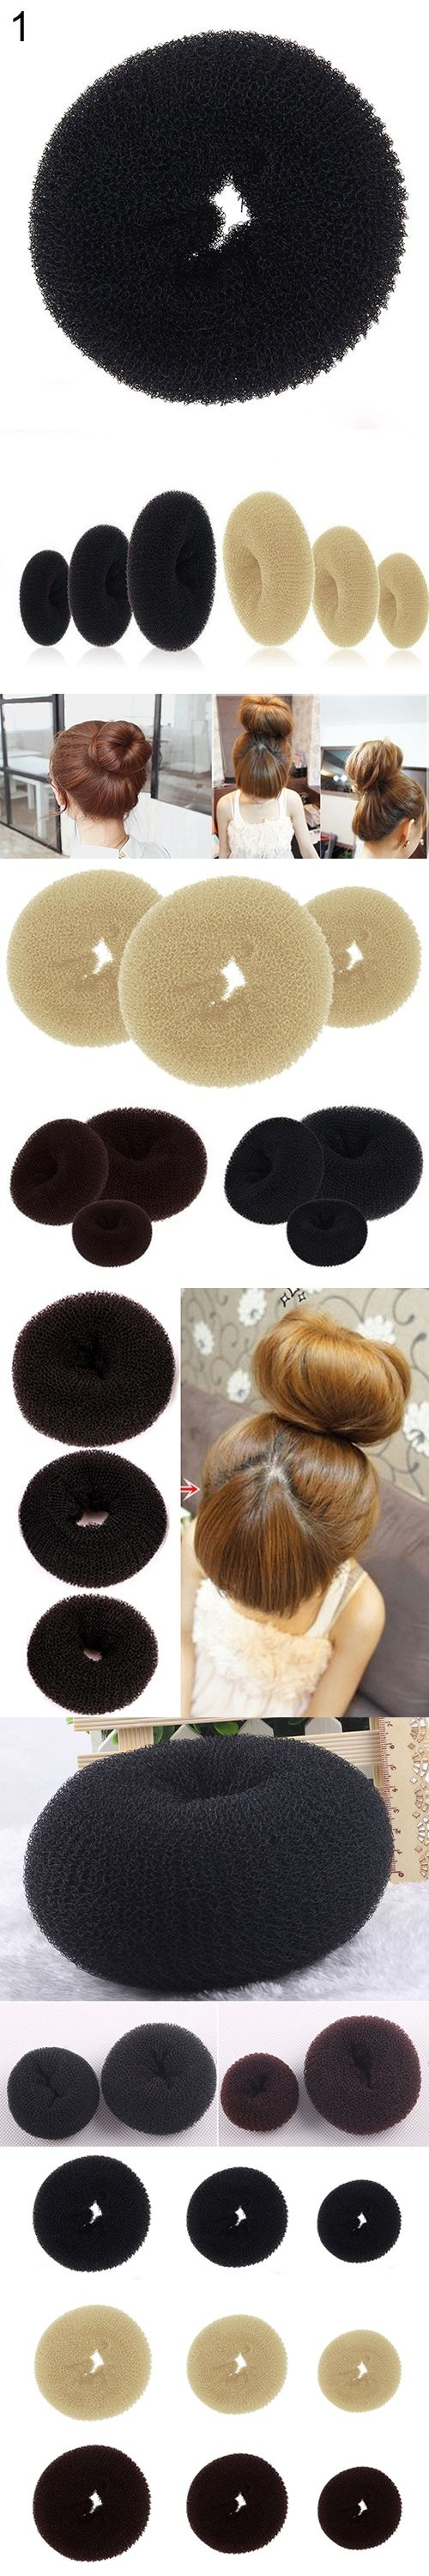 Hairstyler Unique Hot Women Magic Blonde Donut Hair Ring Bun Former Shaper Hair Styler